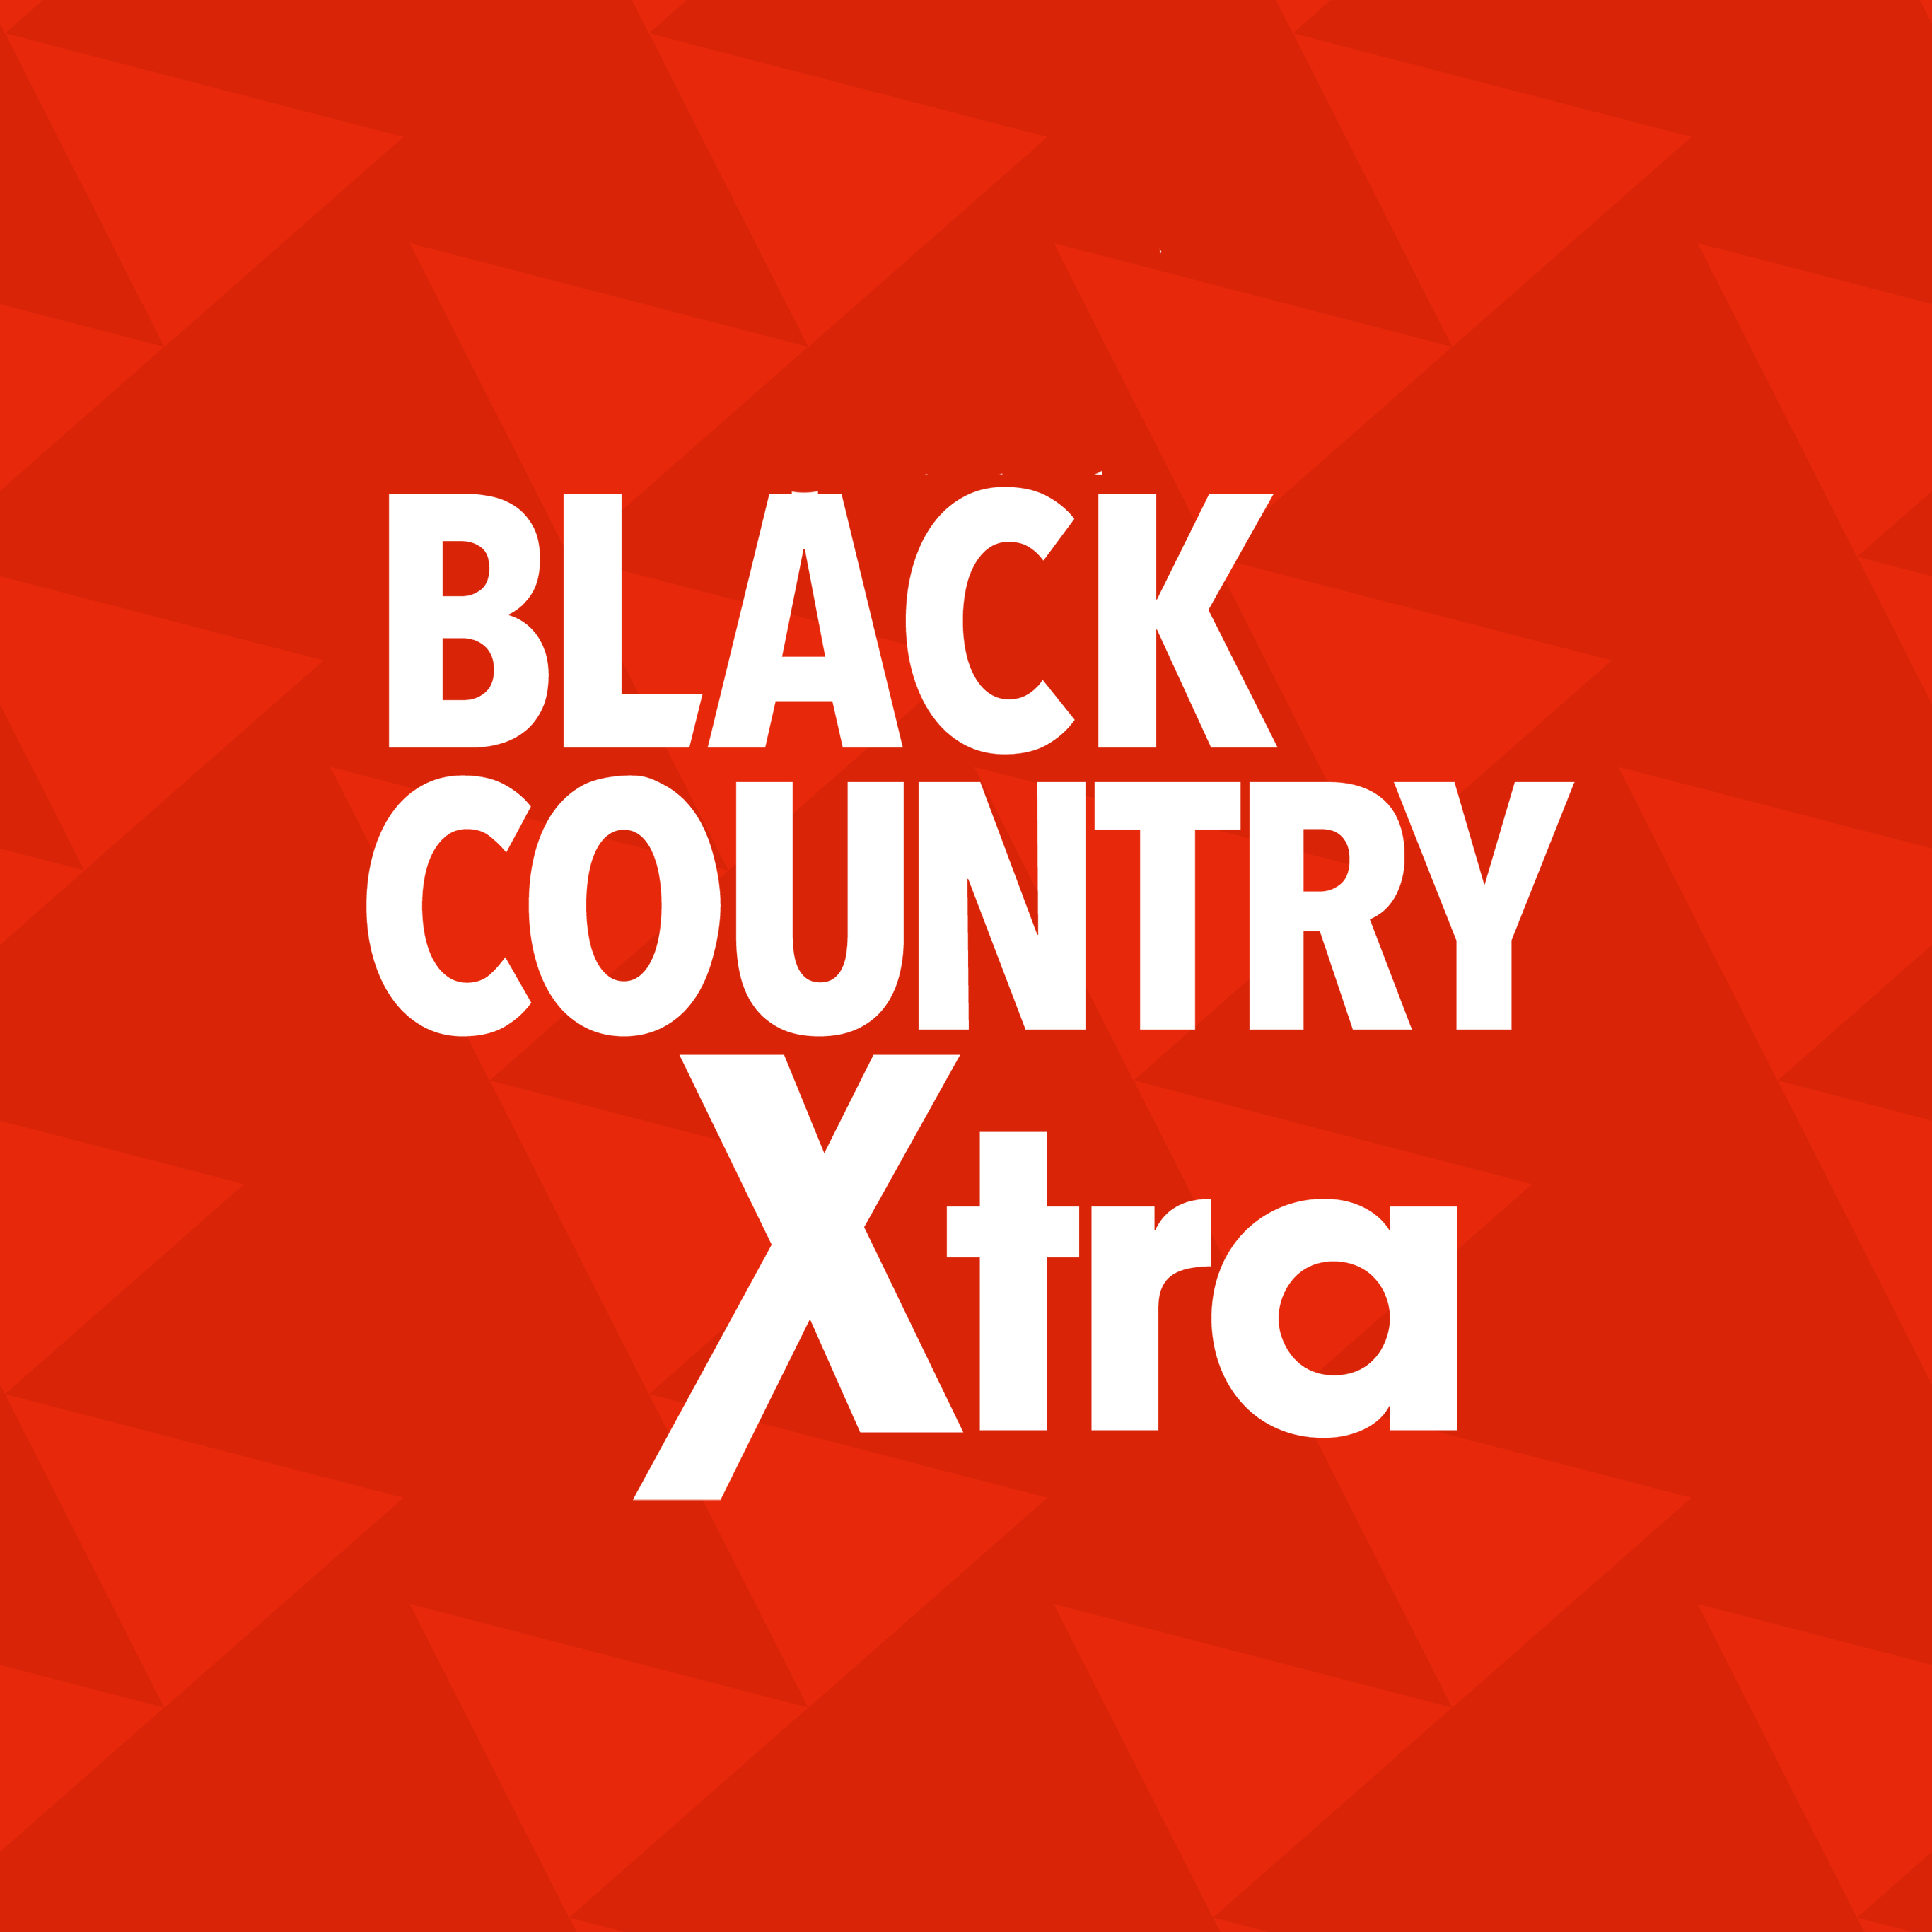 Health and Wellbeing on Black Country Xtra